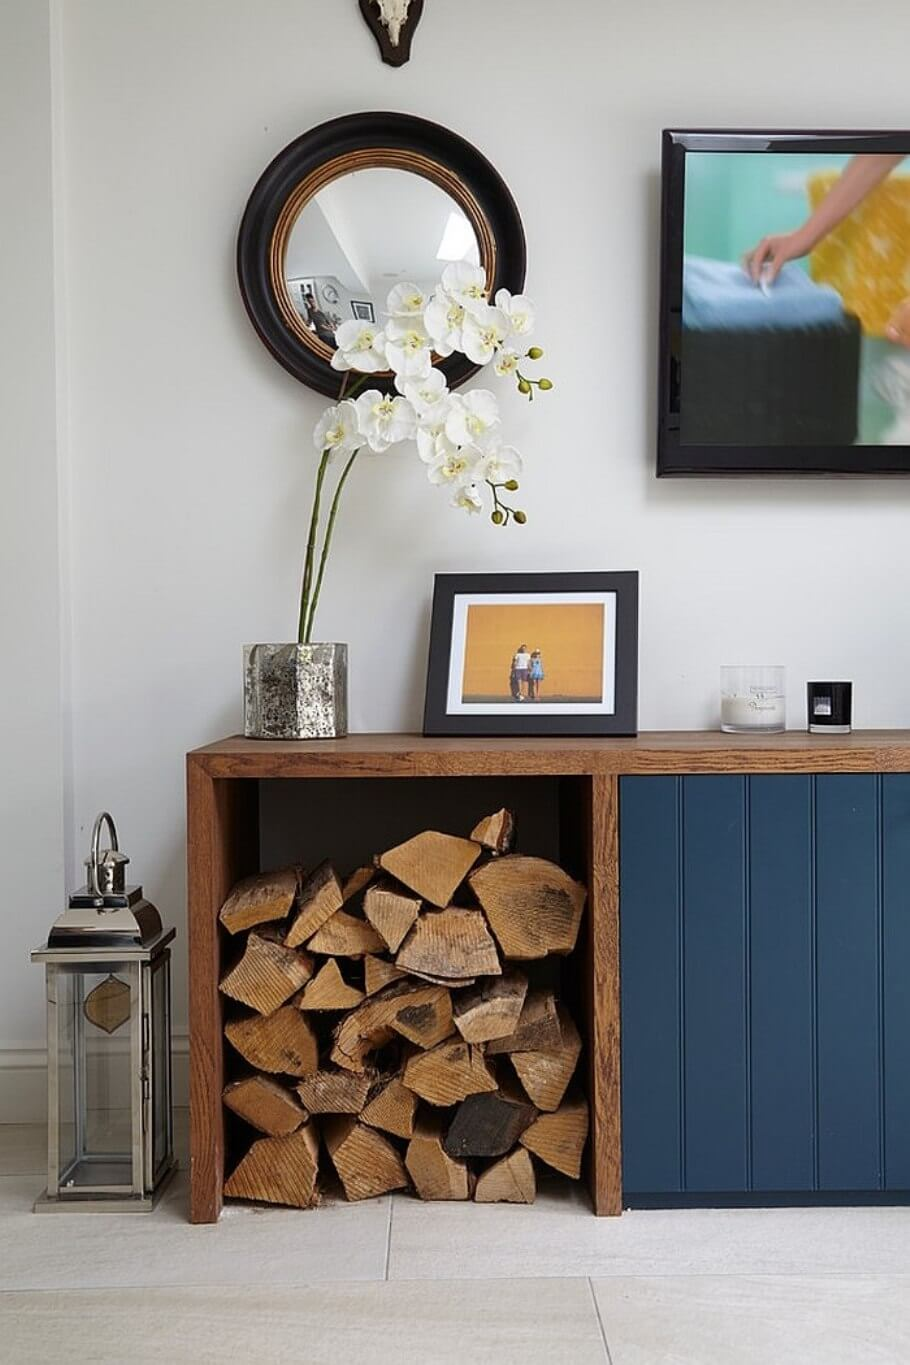 10 creative firewood storage ideas for the living room for Interior log storage